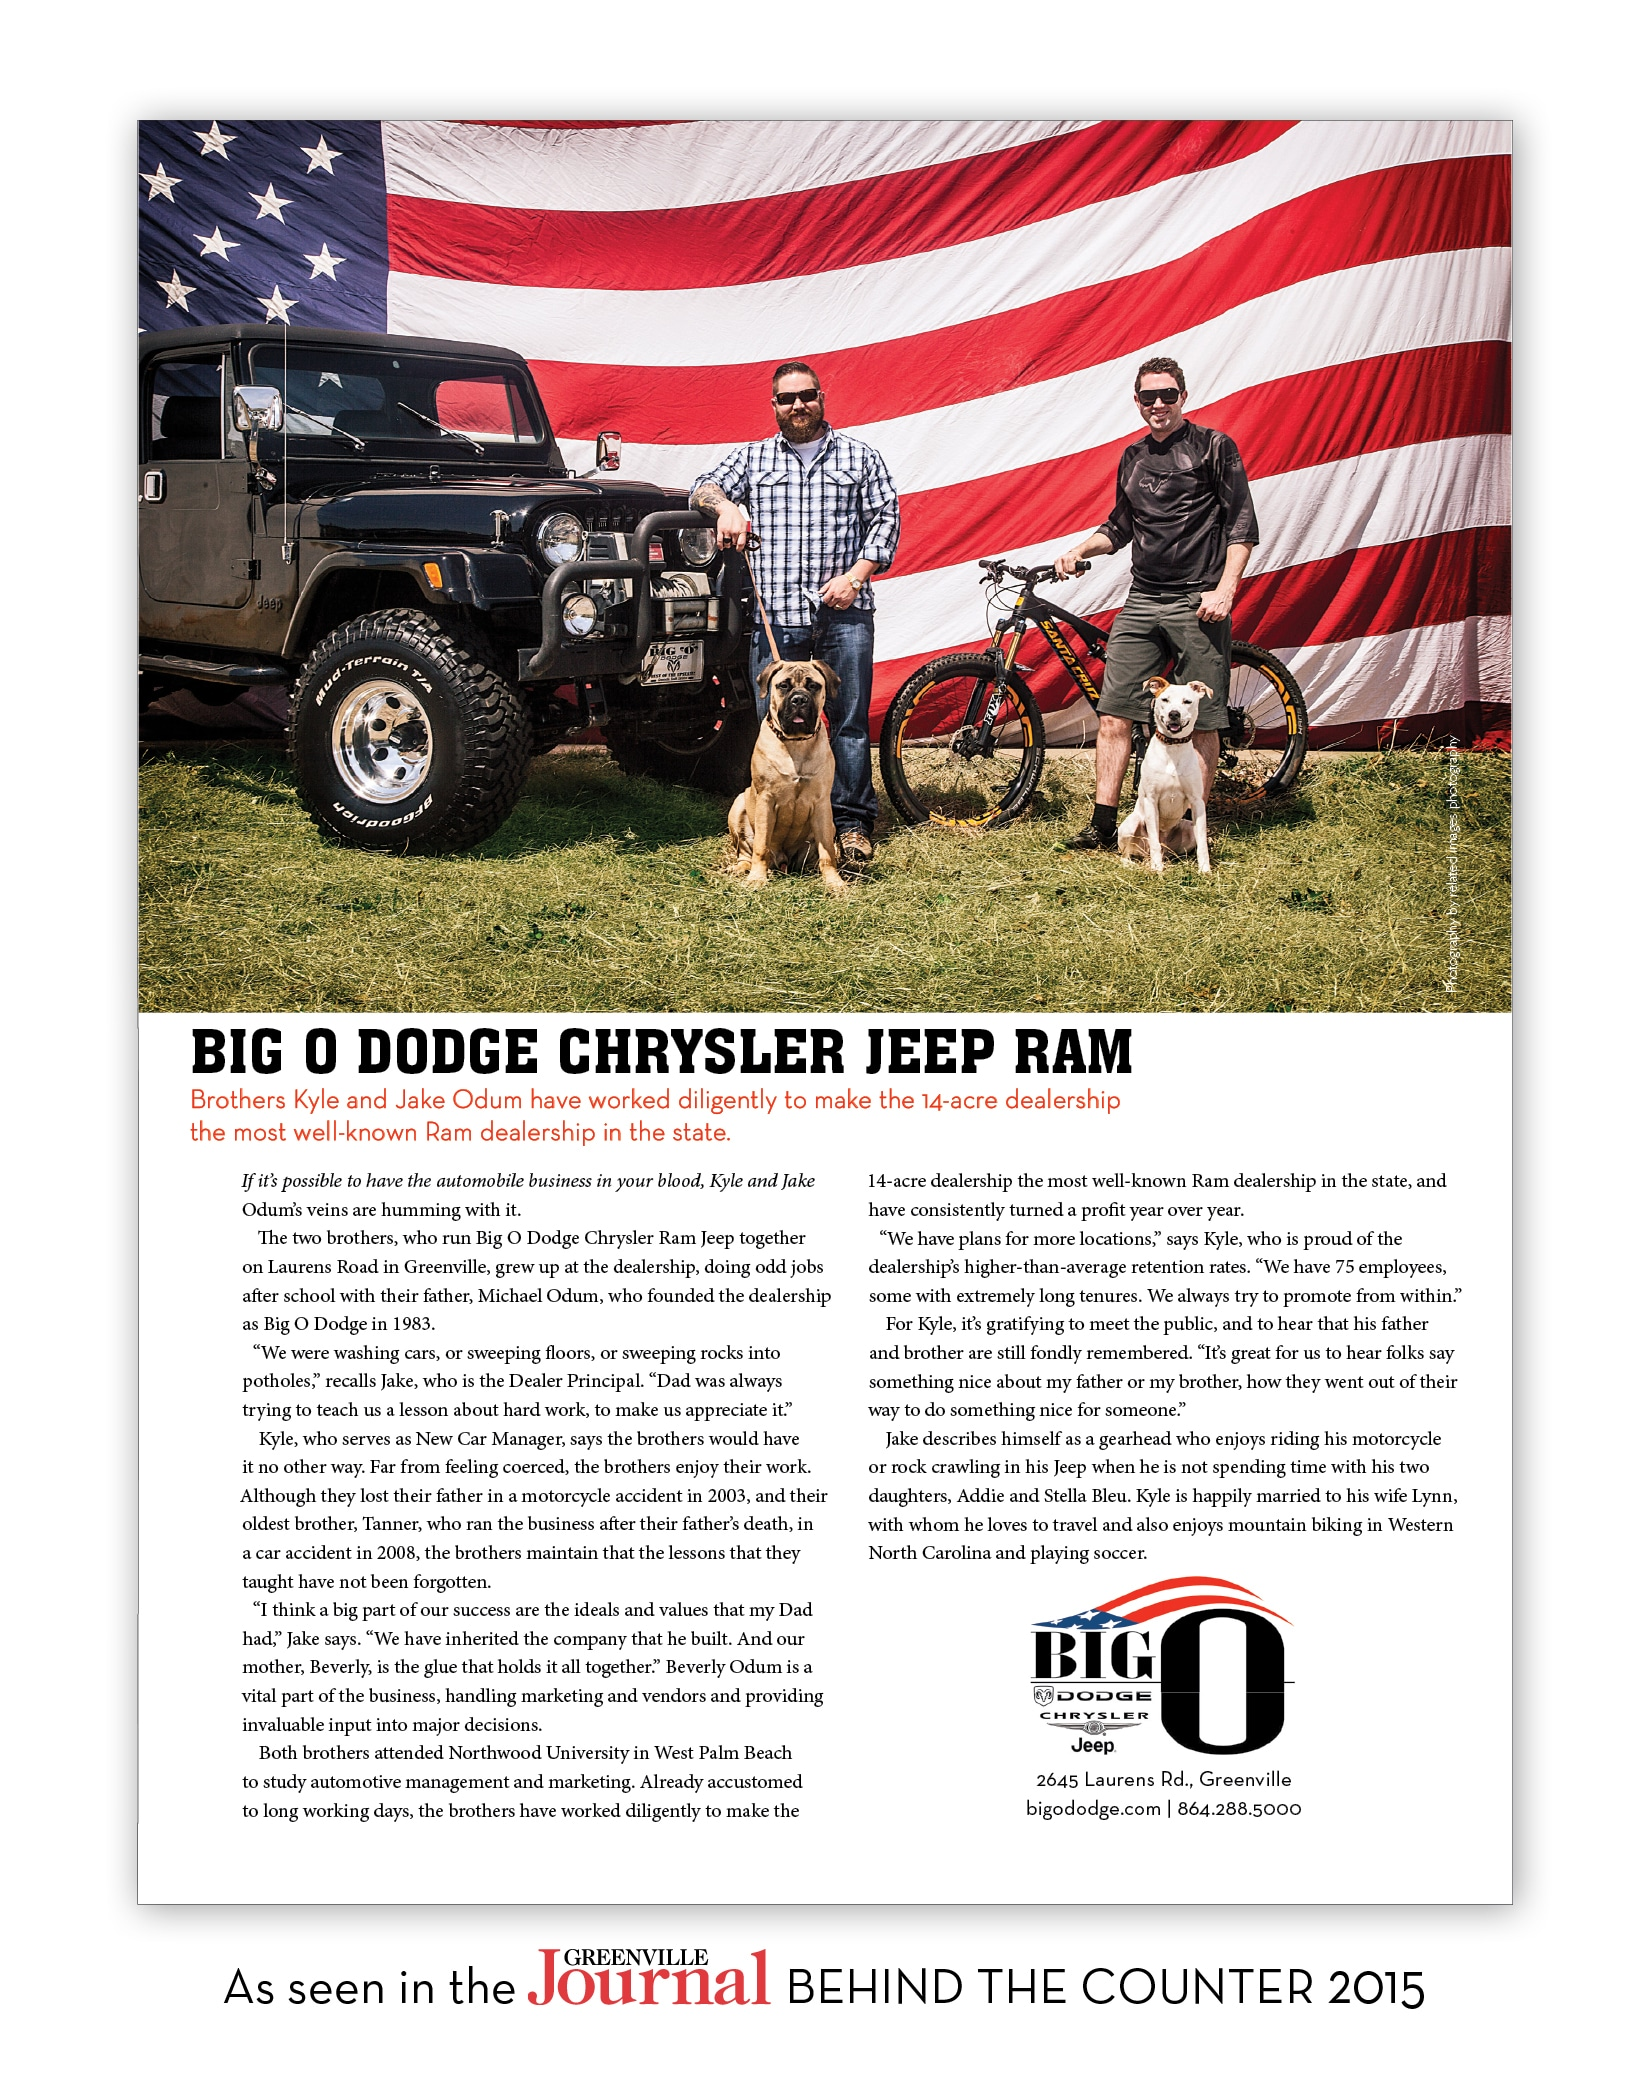 dodge unlimited ma pin in marshfield jeep quirk pinterest ram jeeps wrangler and chrysler